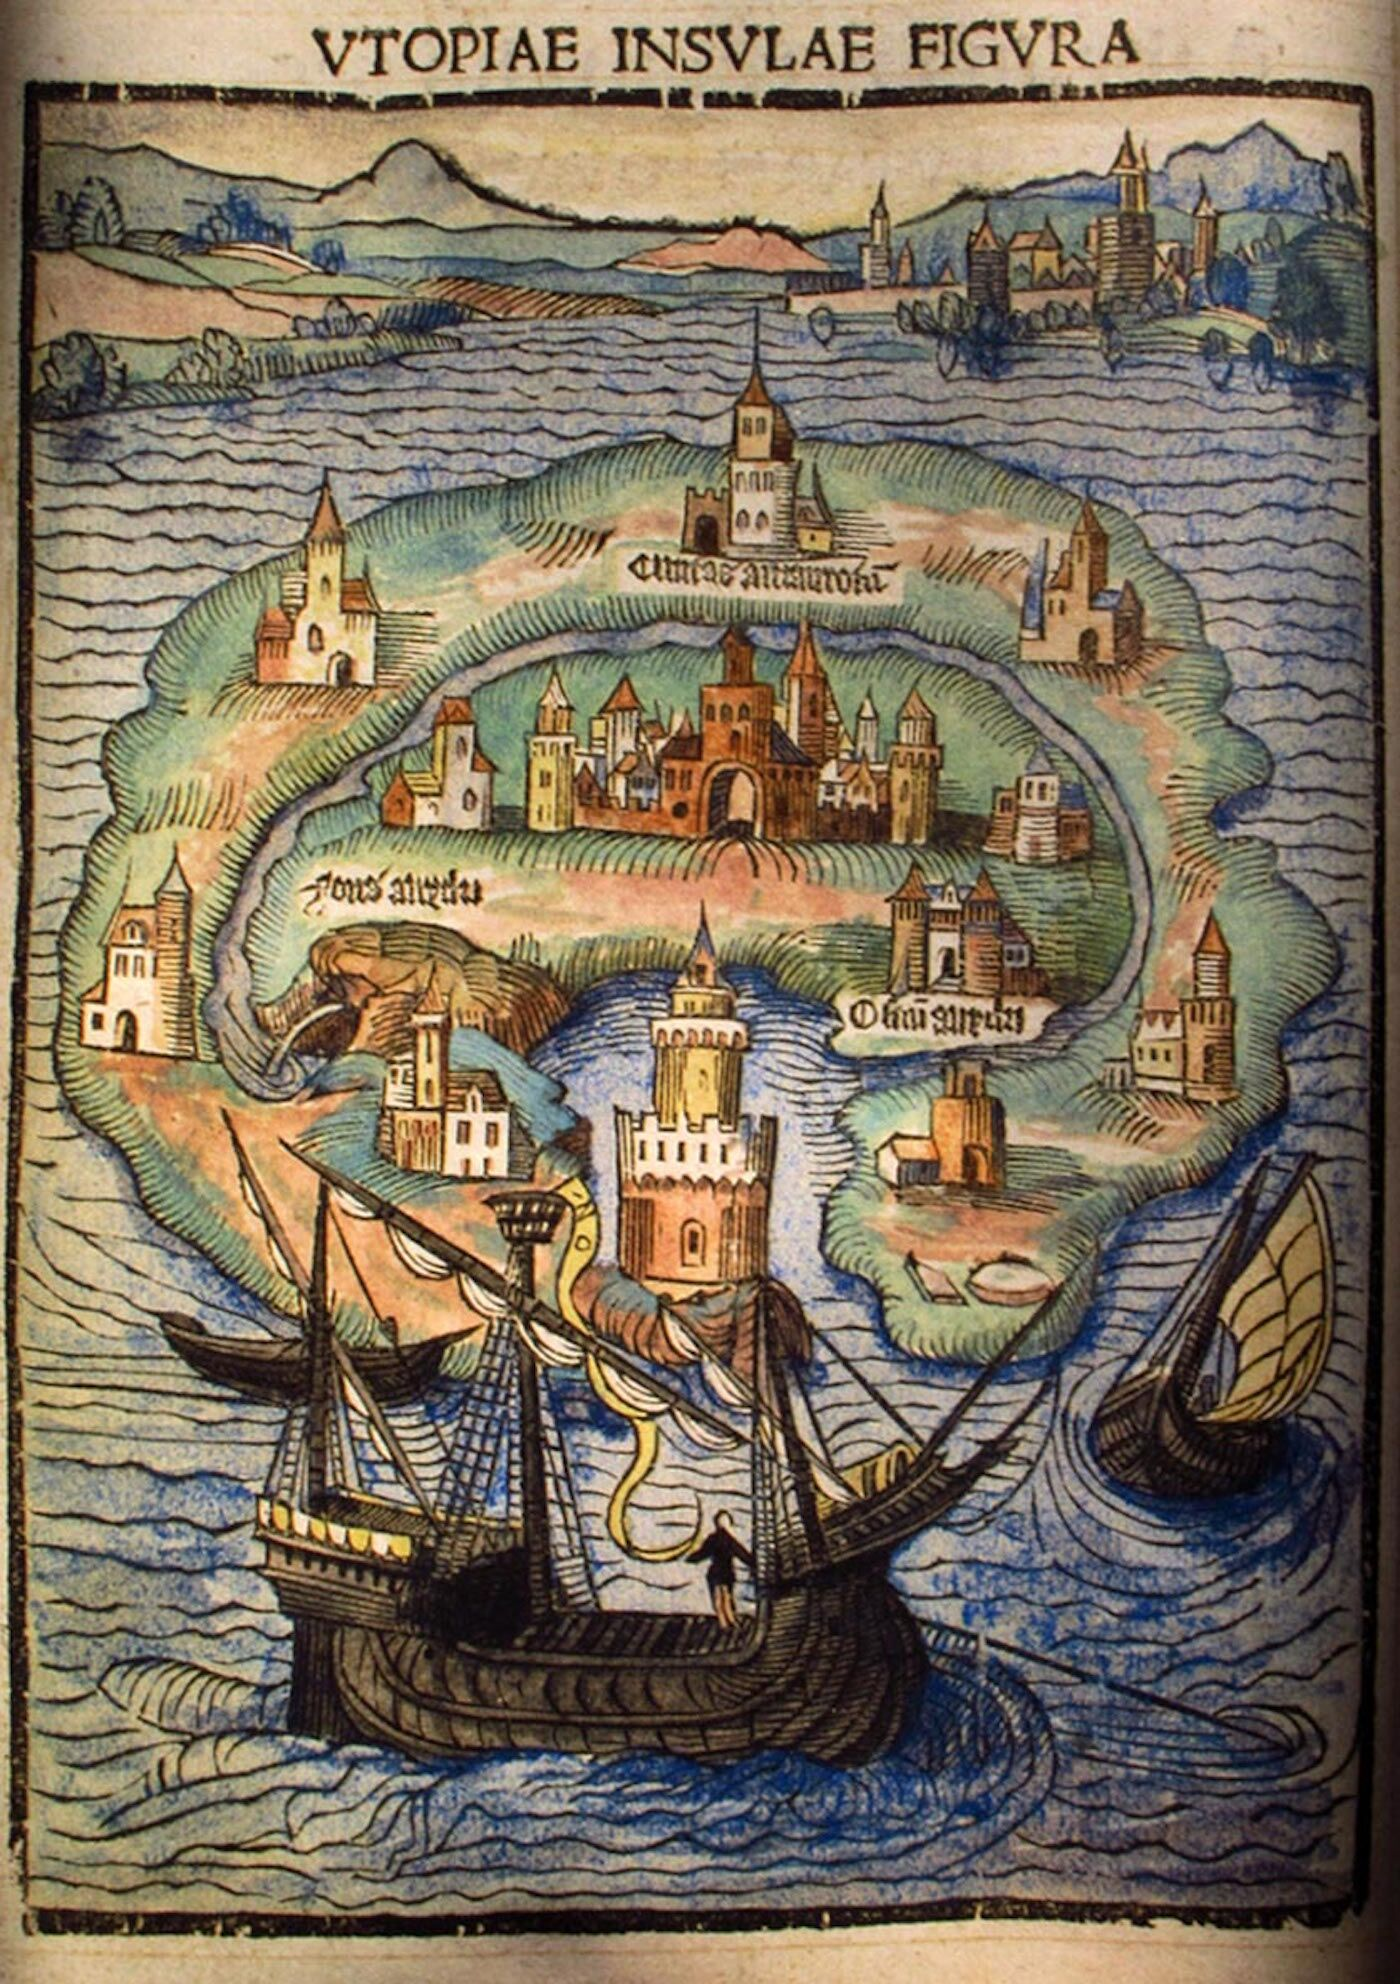 The inner cover of Thomas More's Utopia, 1516